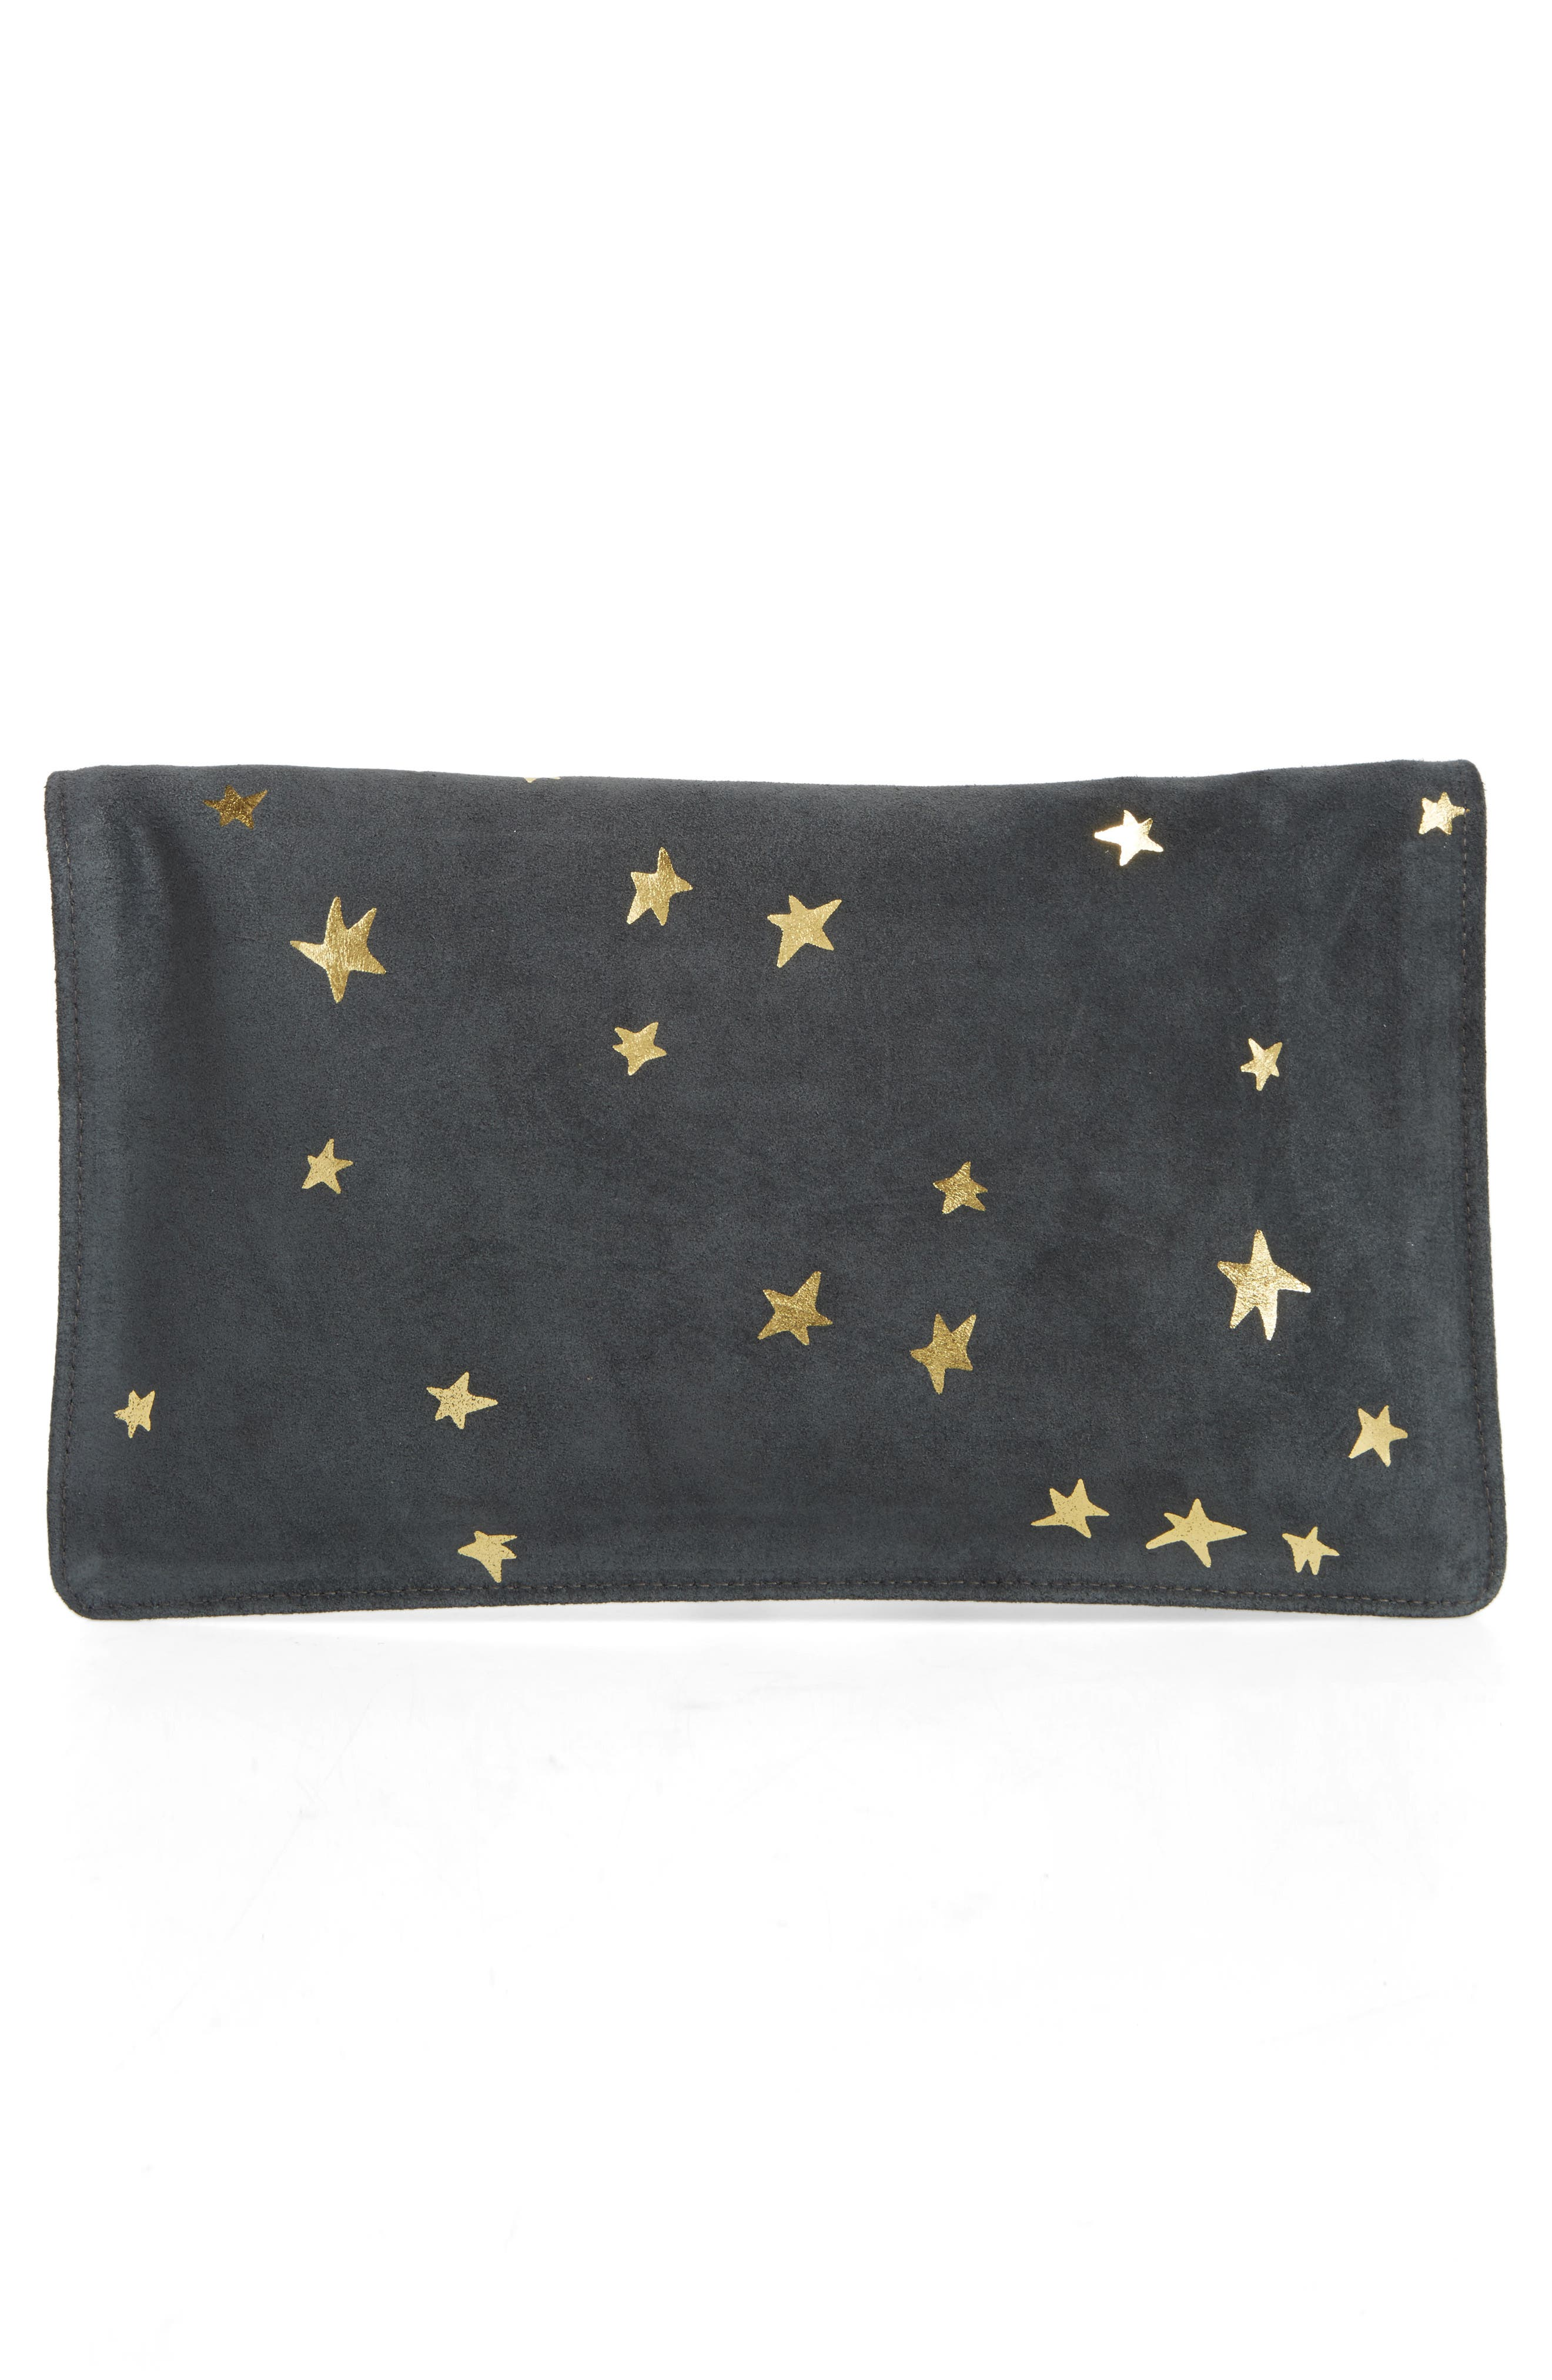 Margot Star Print Foldover Suede Clutch,                             Alternate thumbnail 3, color,                             020